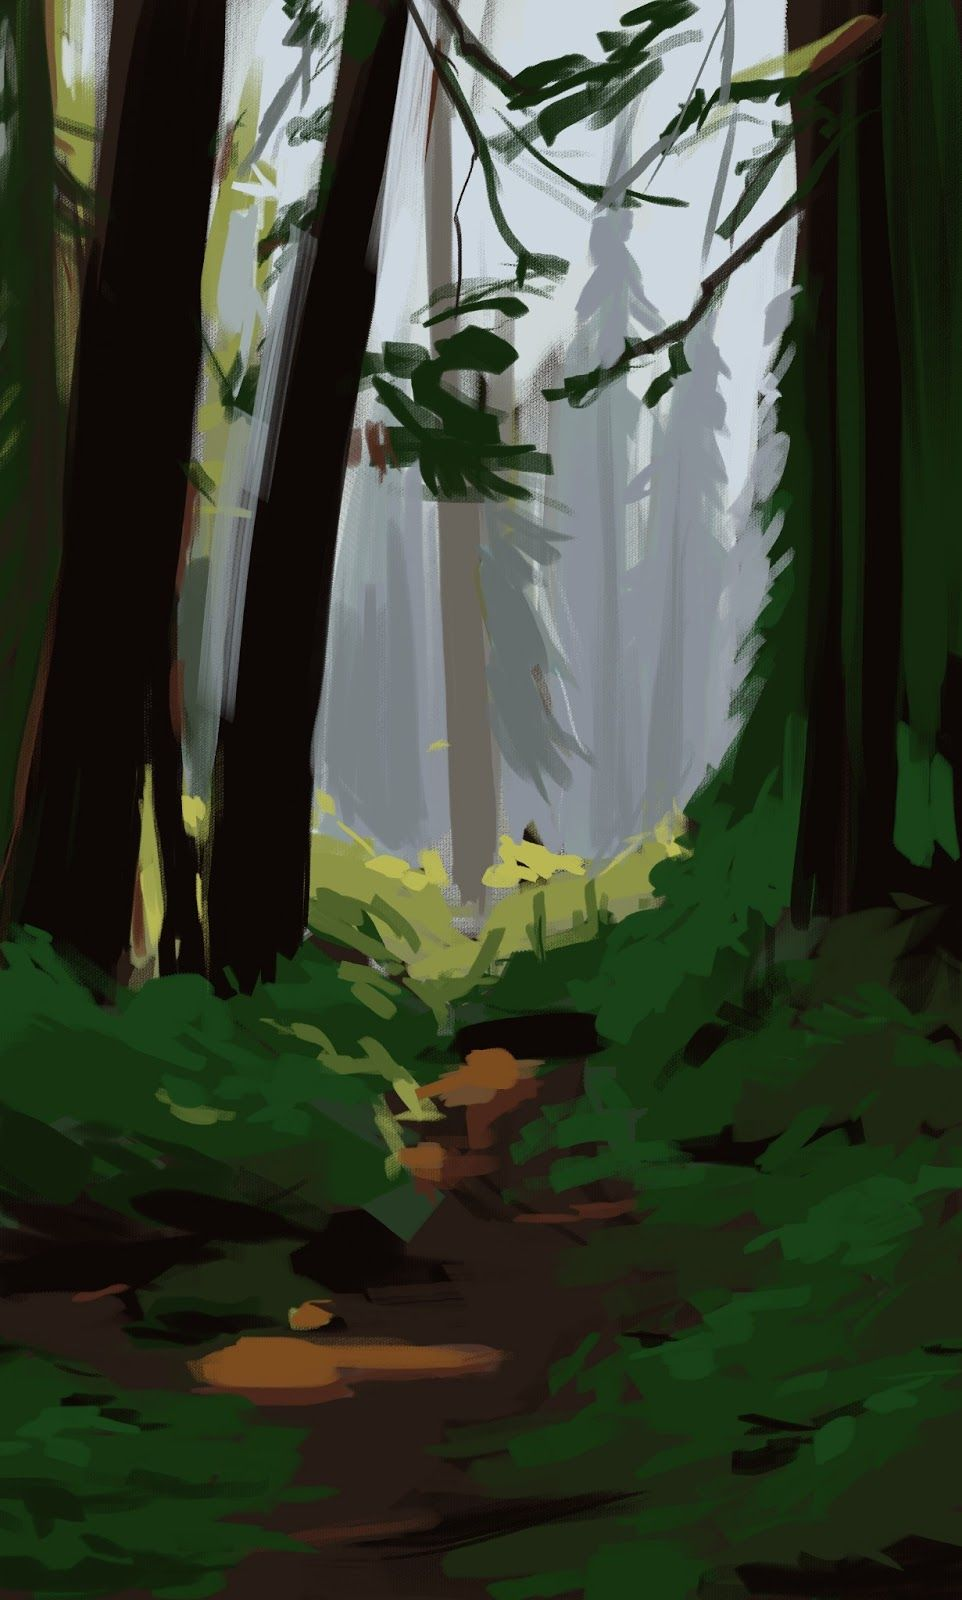 Forest Background Drawing : forest, background, drawing, Speedpainting_forest.jpg, (962×1600), Concept, Environment, Concept,, Forest, Background